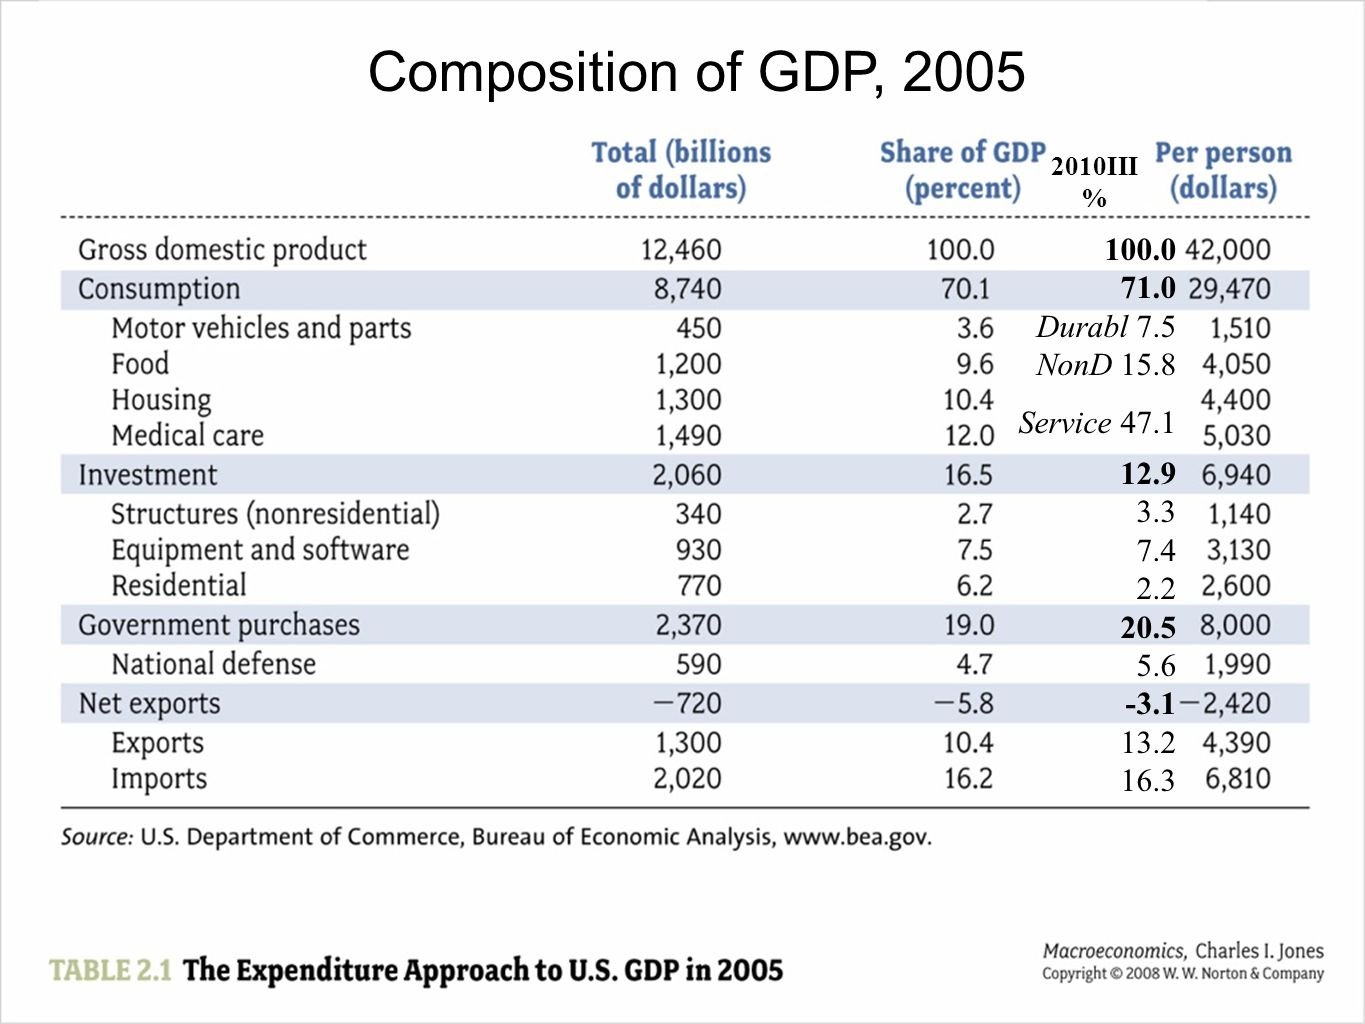 Composition of GDP, Durabl 7.5 NonD 15.8 Service 47.1